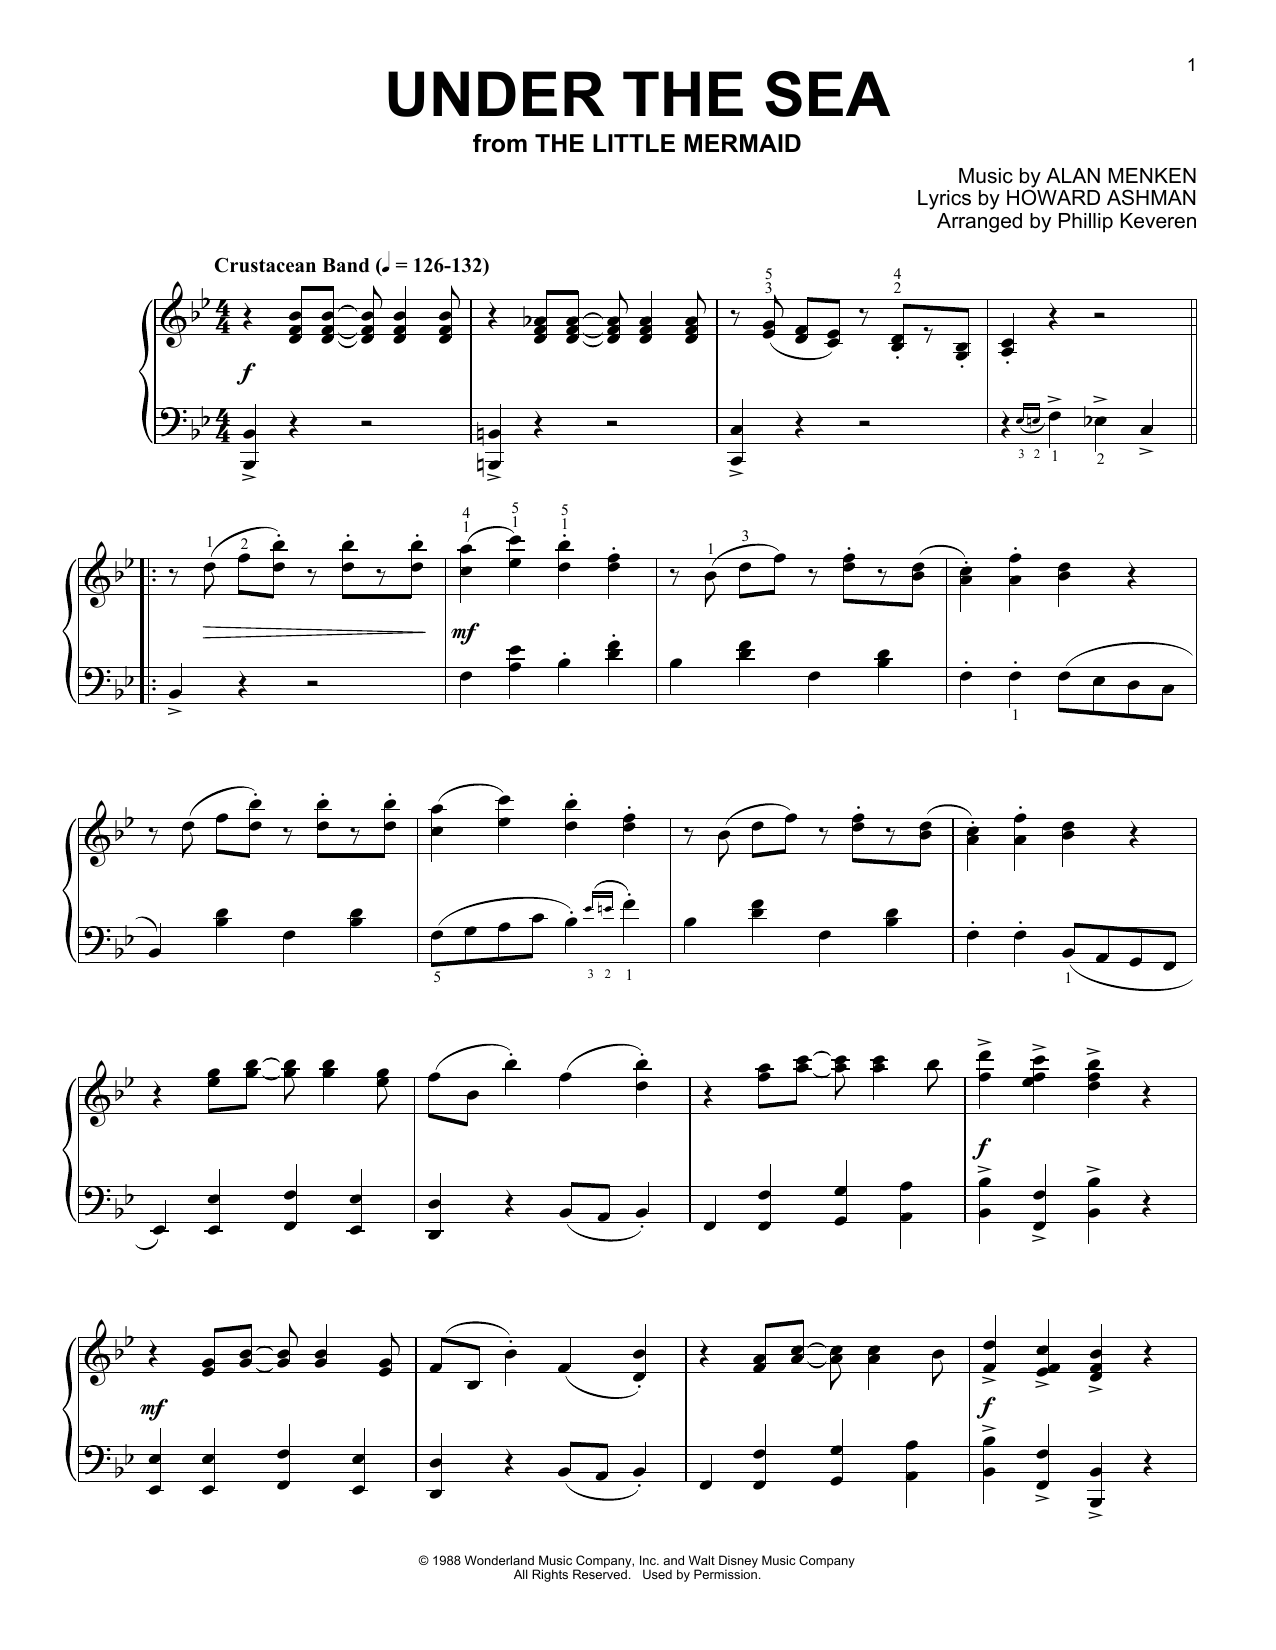 Alan Menken Under The Sea Ragtime Version From The Little Mermaid Arr Phillip Keveren Sheet Music Pdf Notes Chords Children Score Piano Solo Download Printable Sku 188839